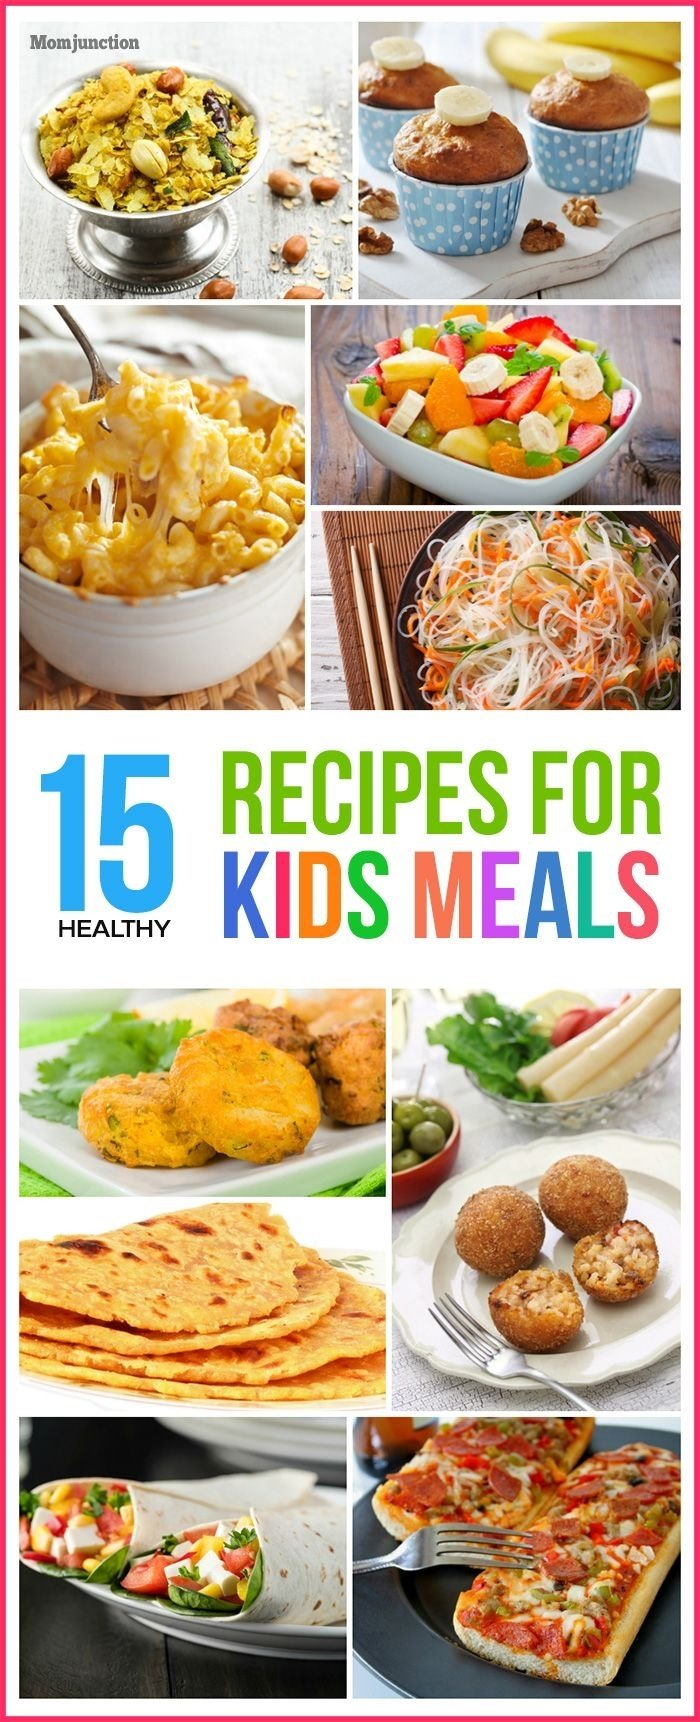 10 Most Popular Healthy Food Ideas For Toddlers 805 best healthy food for kids dinner images on pinterest cooking 5 2020